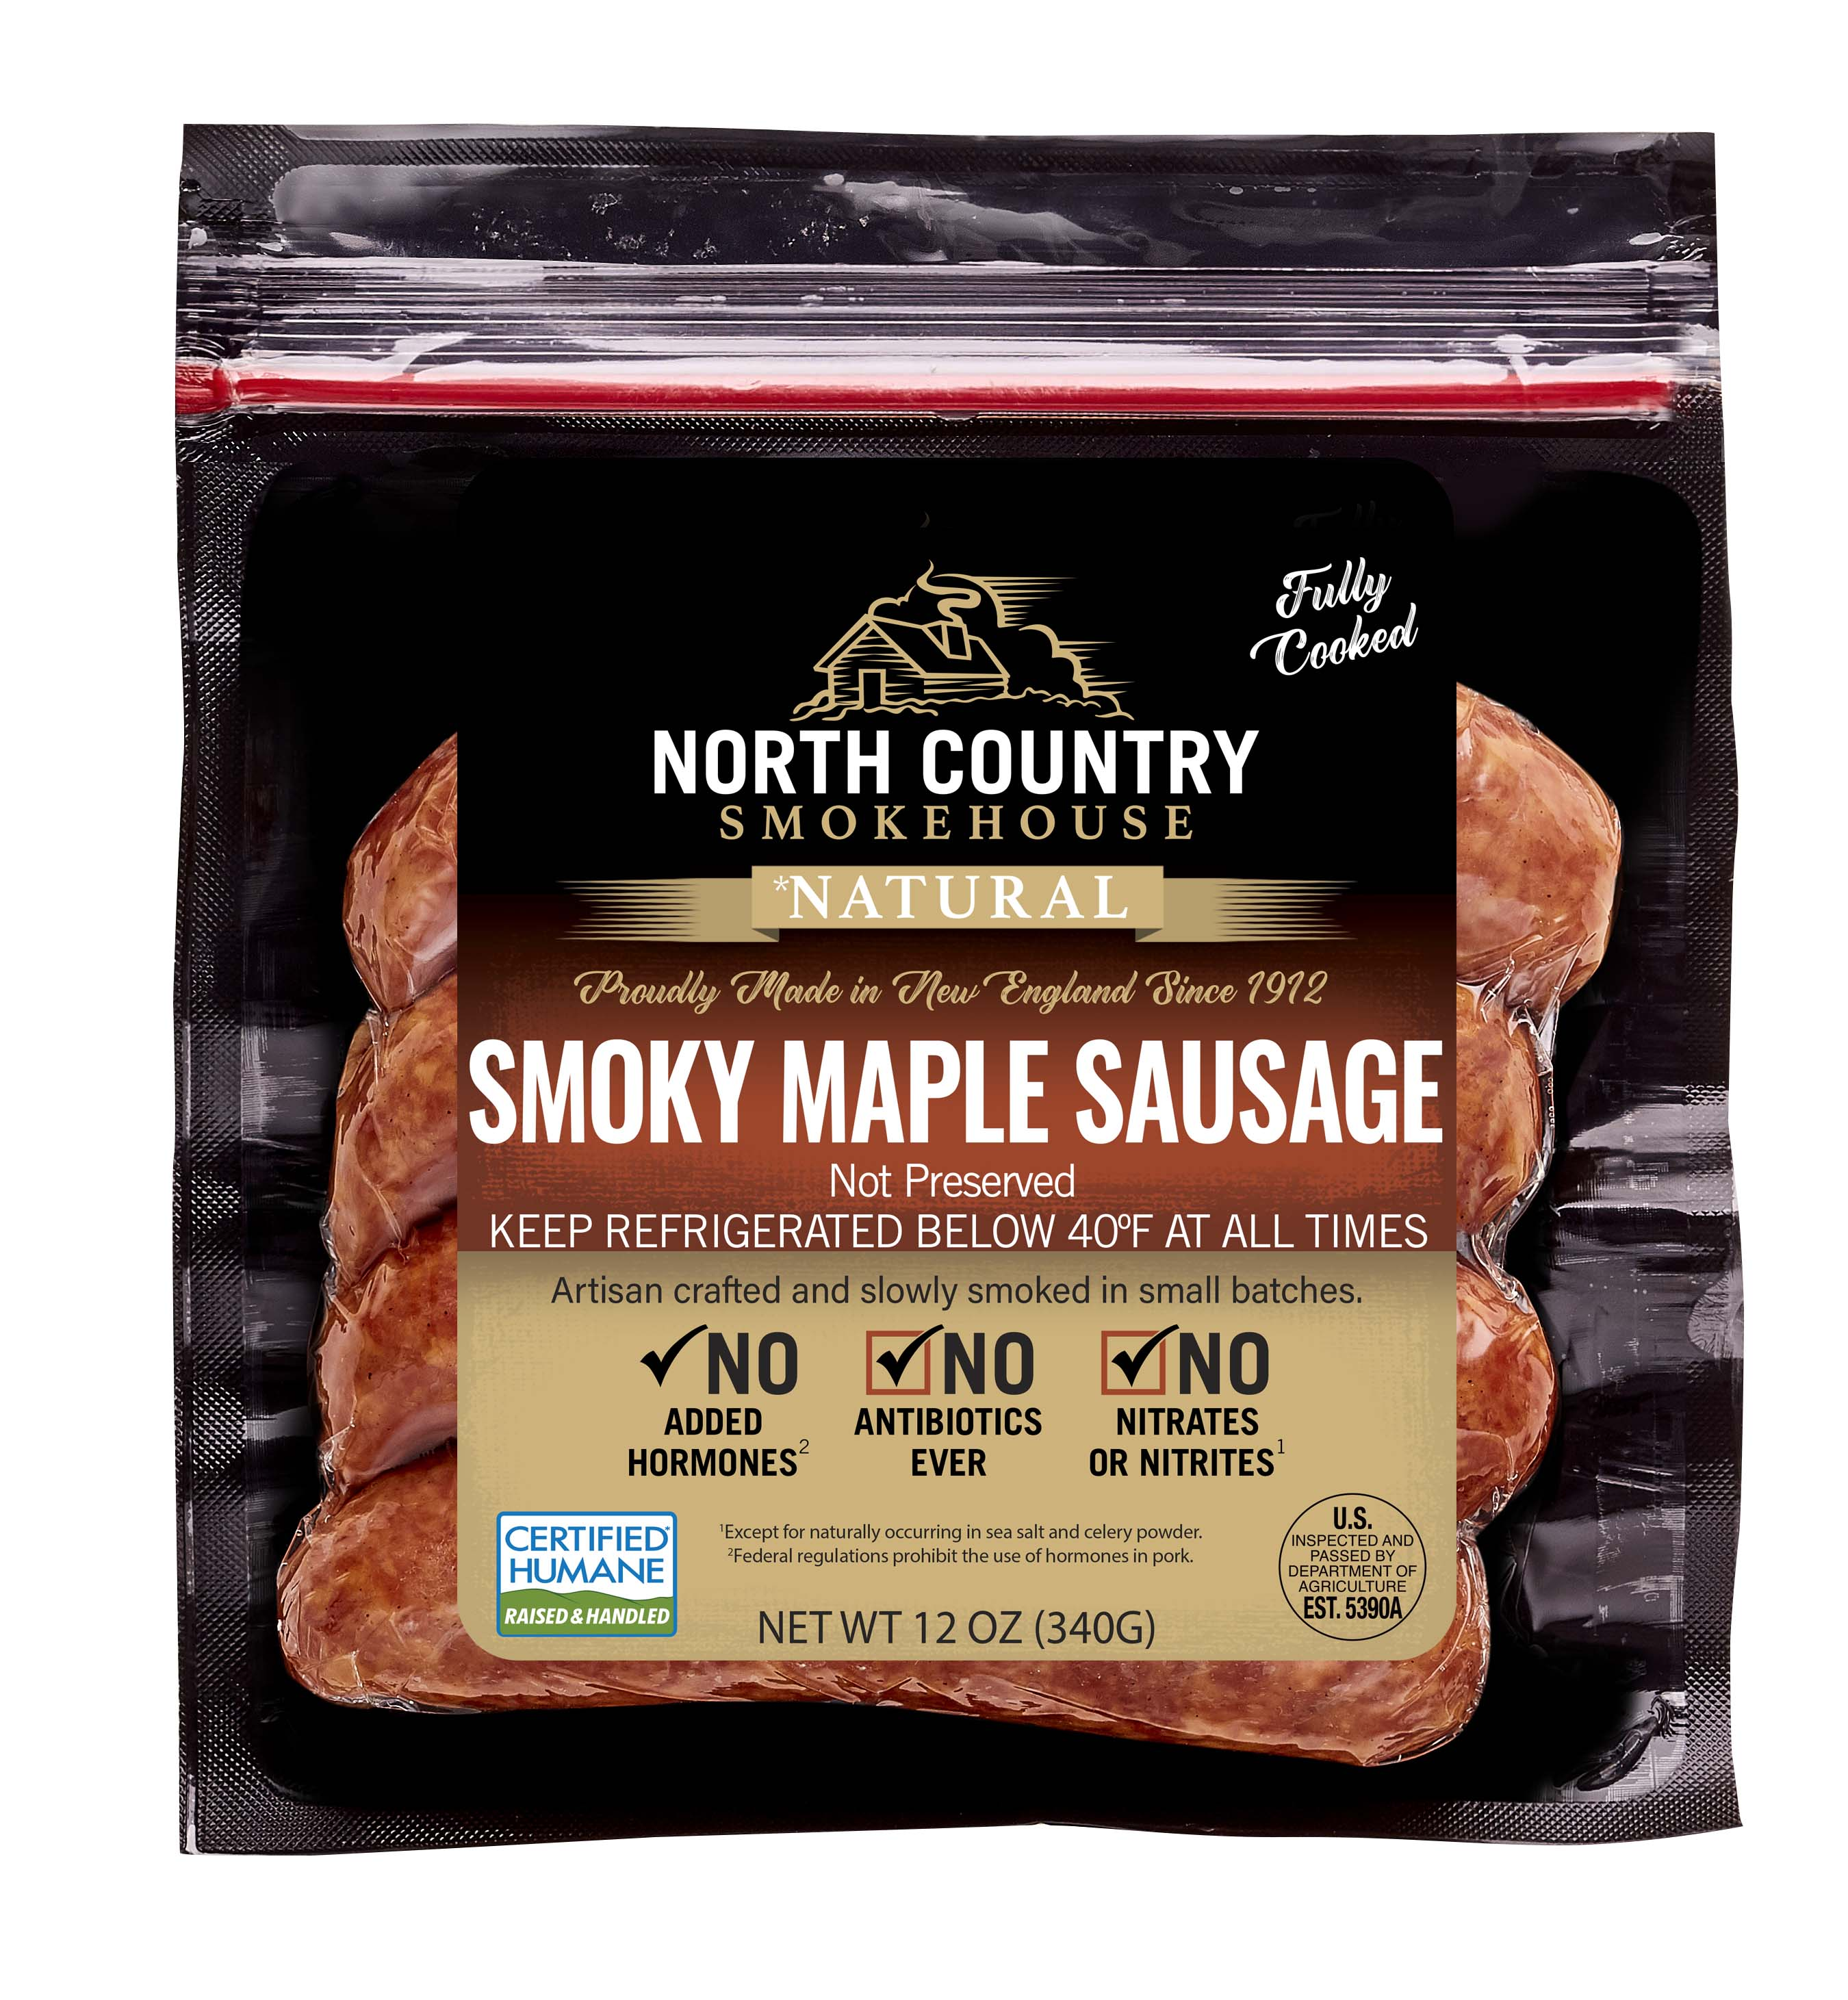 Natural Smoky Maple Sausage - 3, 12 oz. packages